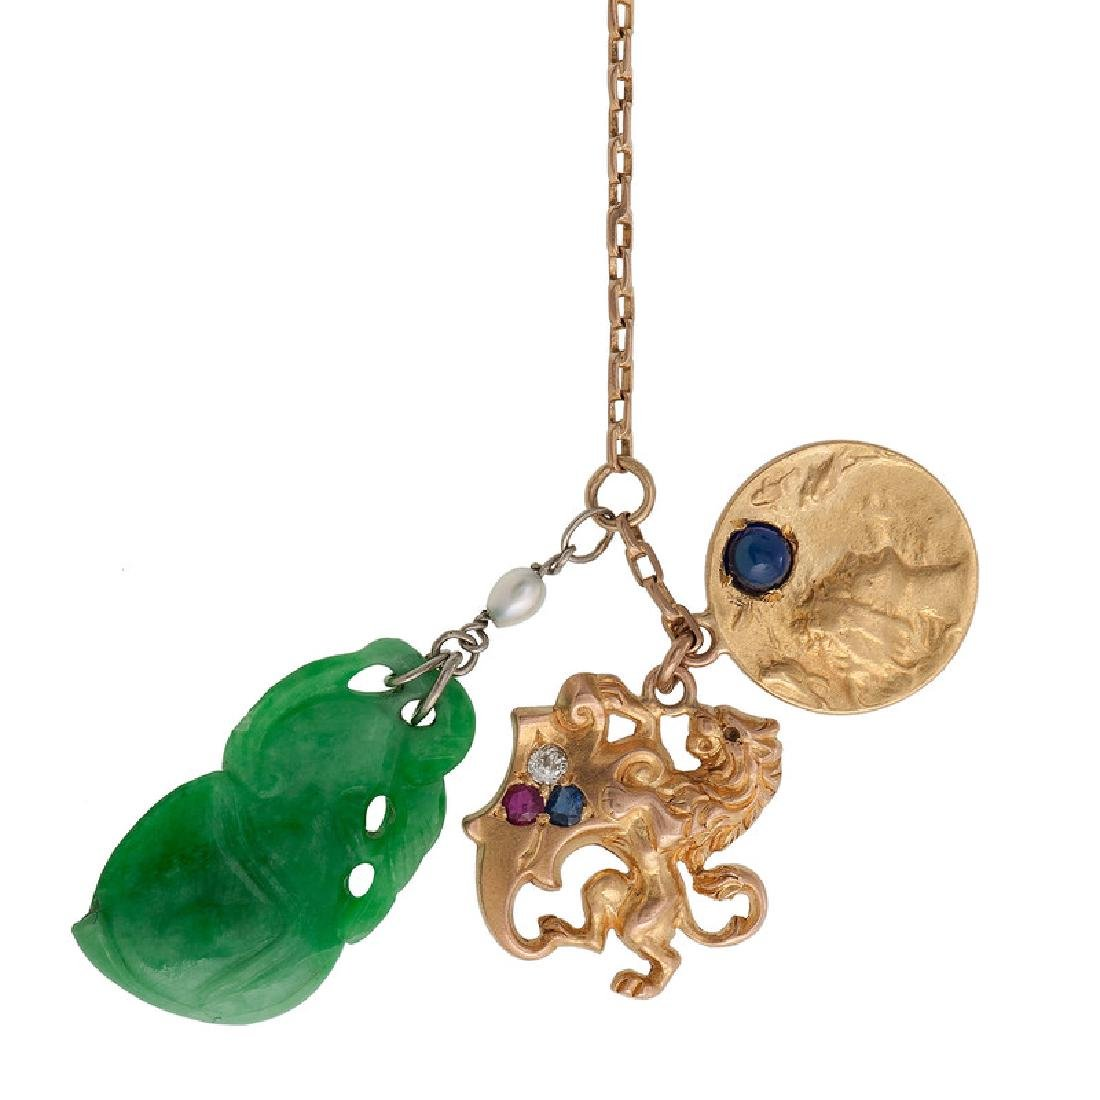 Gold Filled Bracelet with Jade and Gold Charms - 2